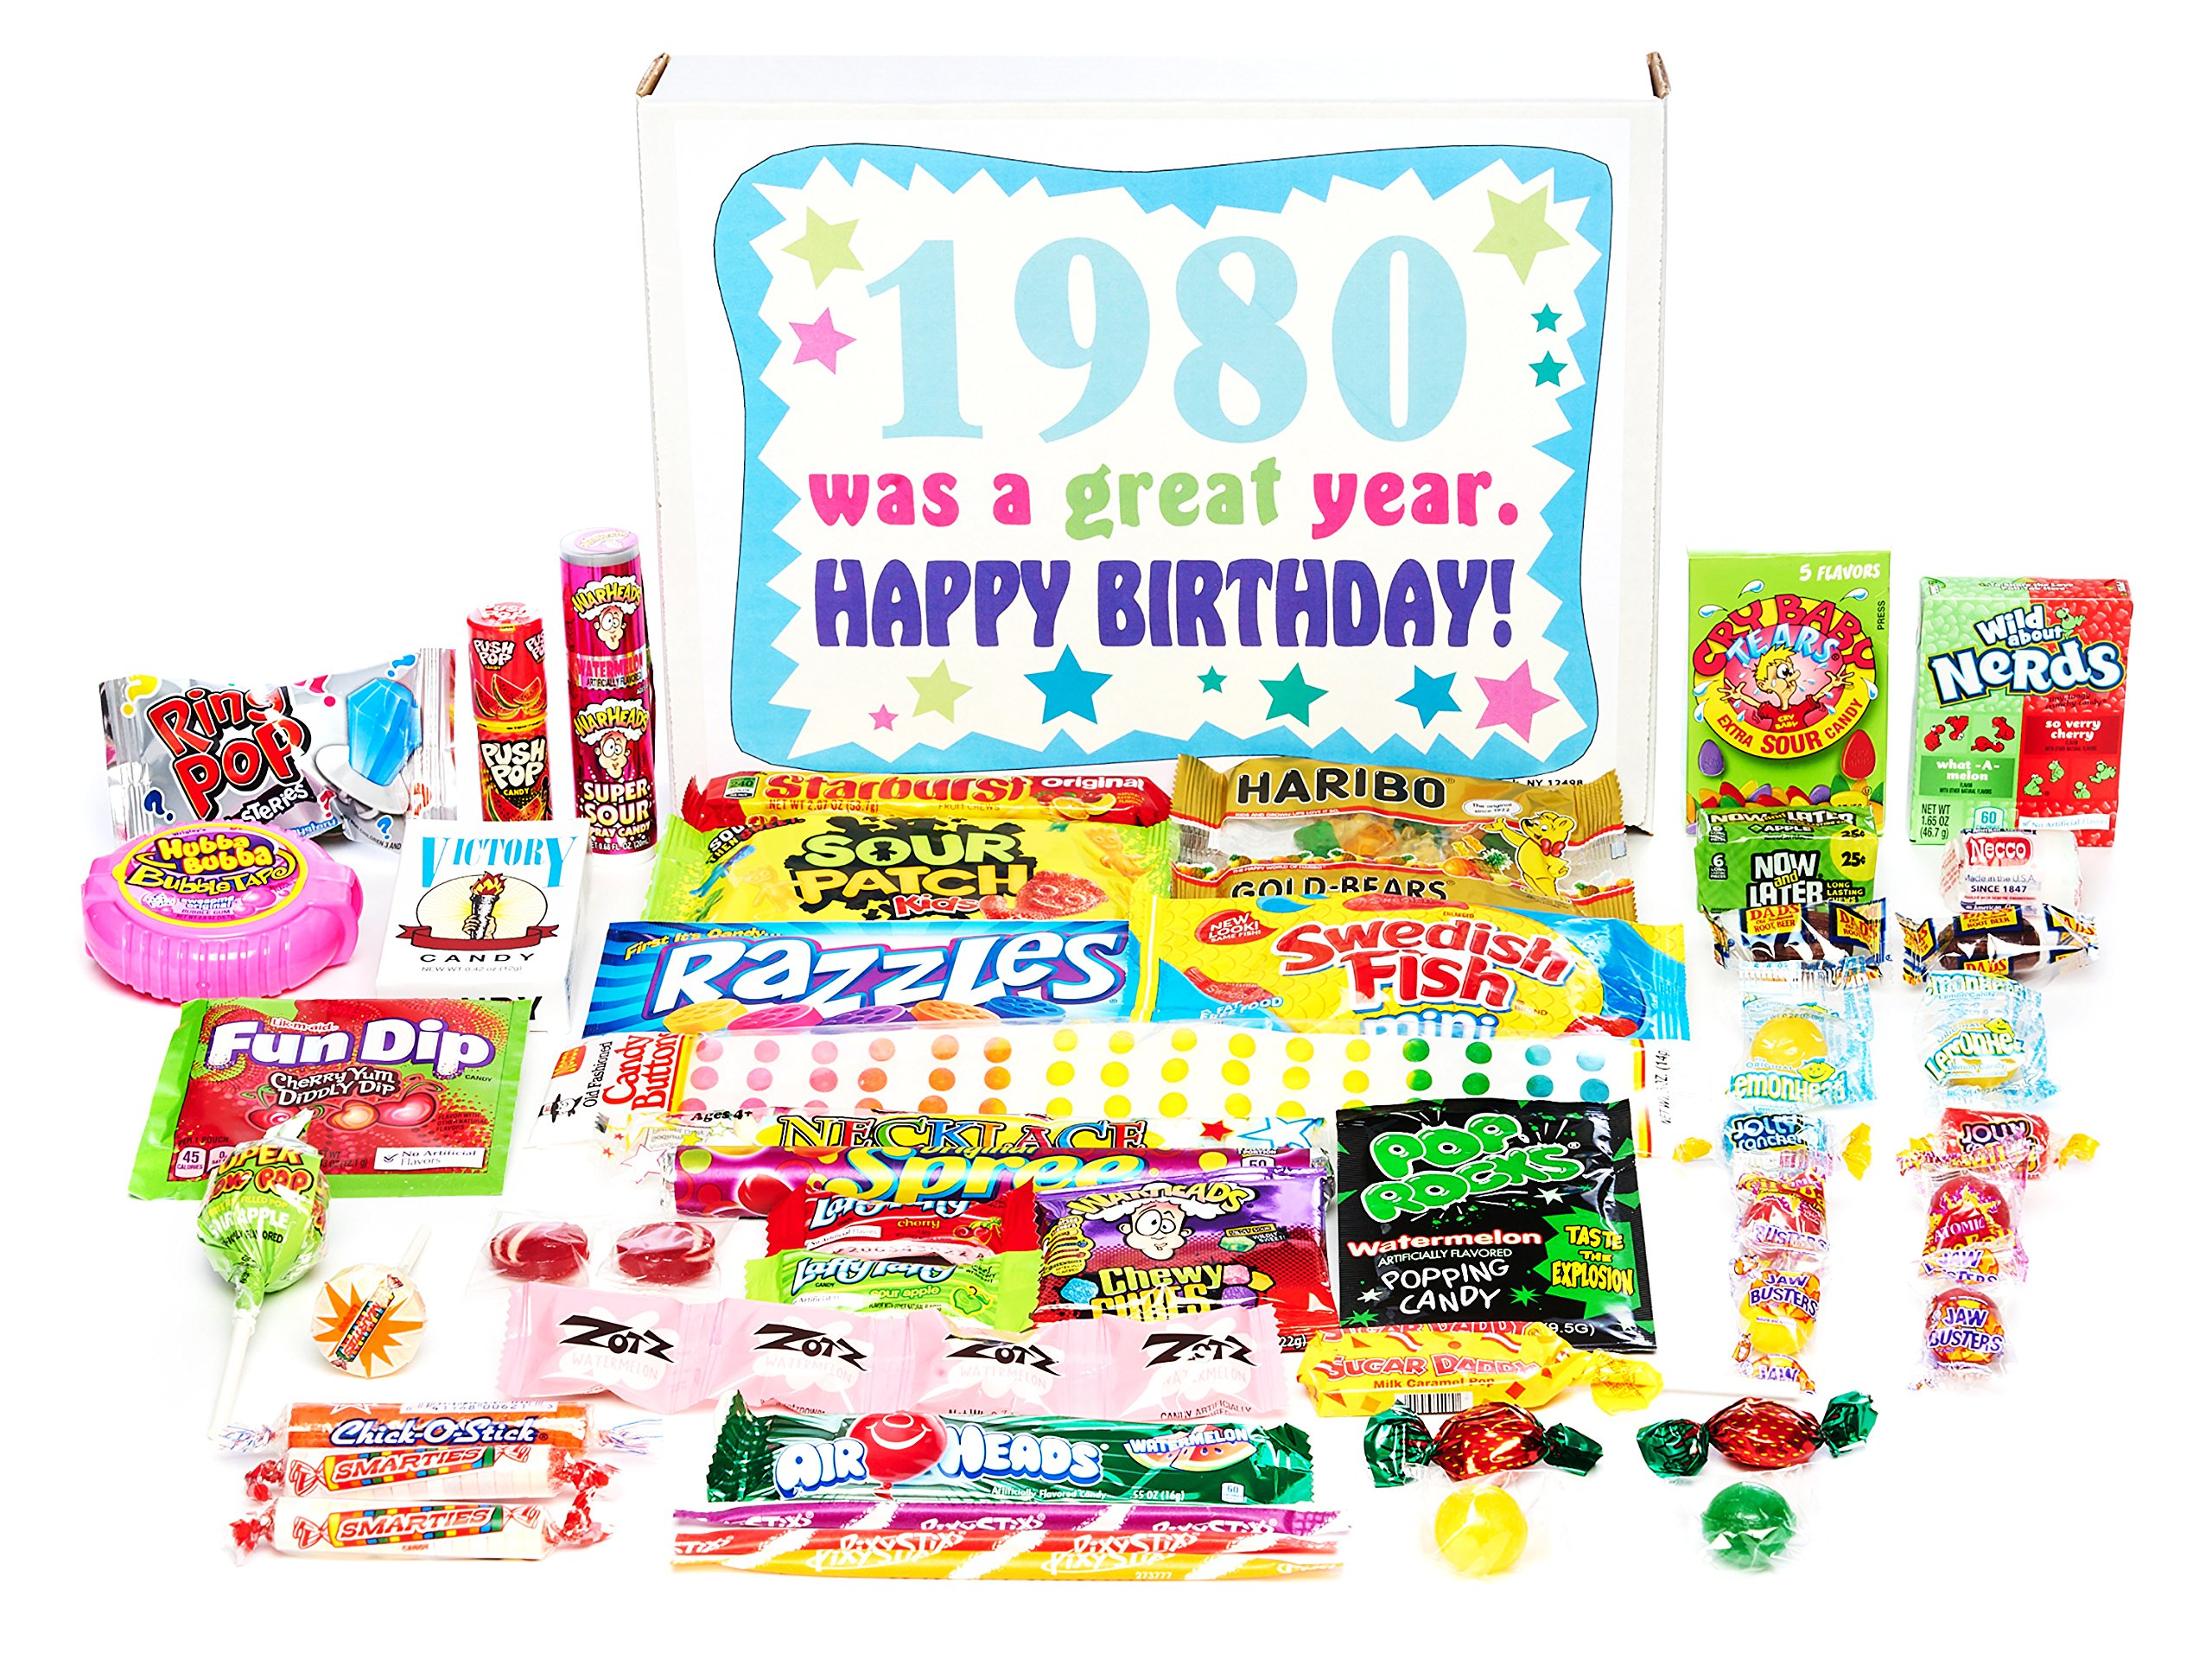 Woodstock Candy ~ 1980 39th Birthday Gift Box of Nostalgic Retro Candy from Childhood for 39 Year Old Man or Woman Born 1980